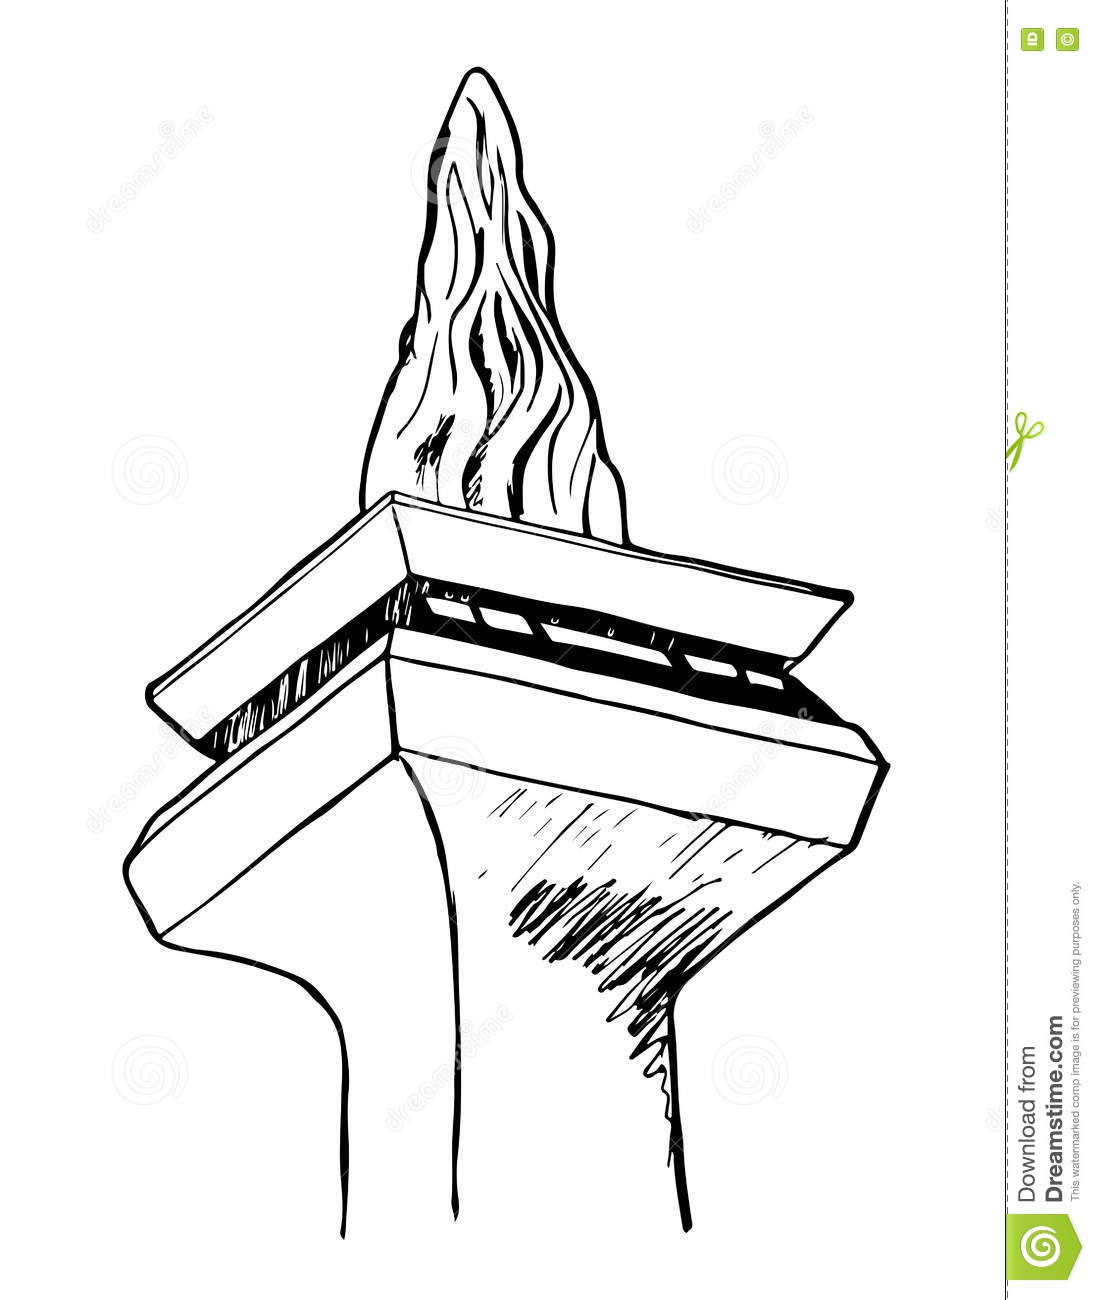 A Sketch Of Monumen Nasional Or Monas In Jakarta Indonesia Stock